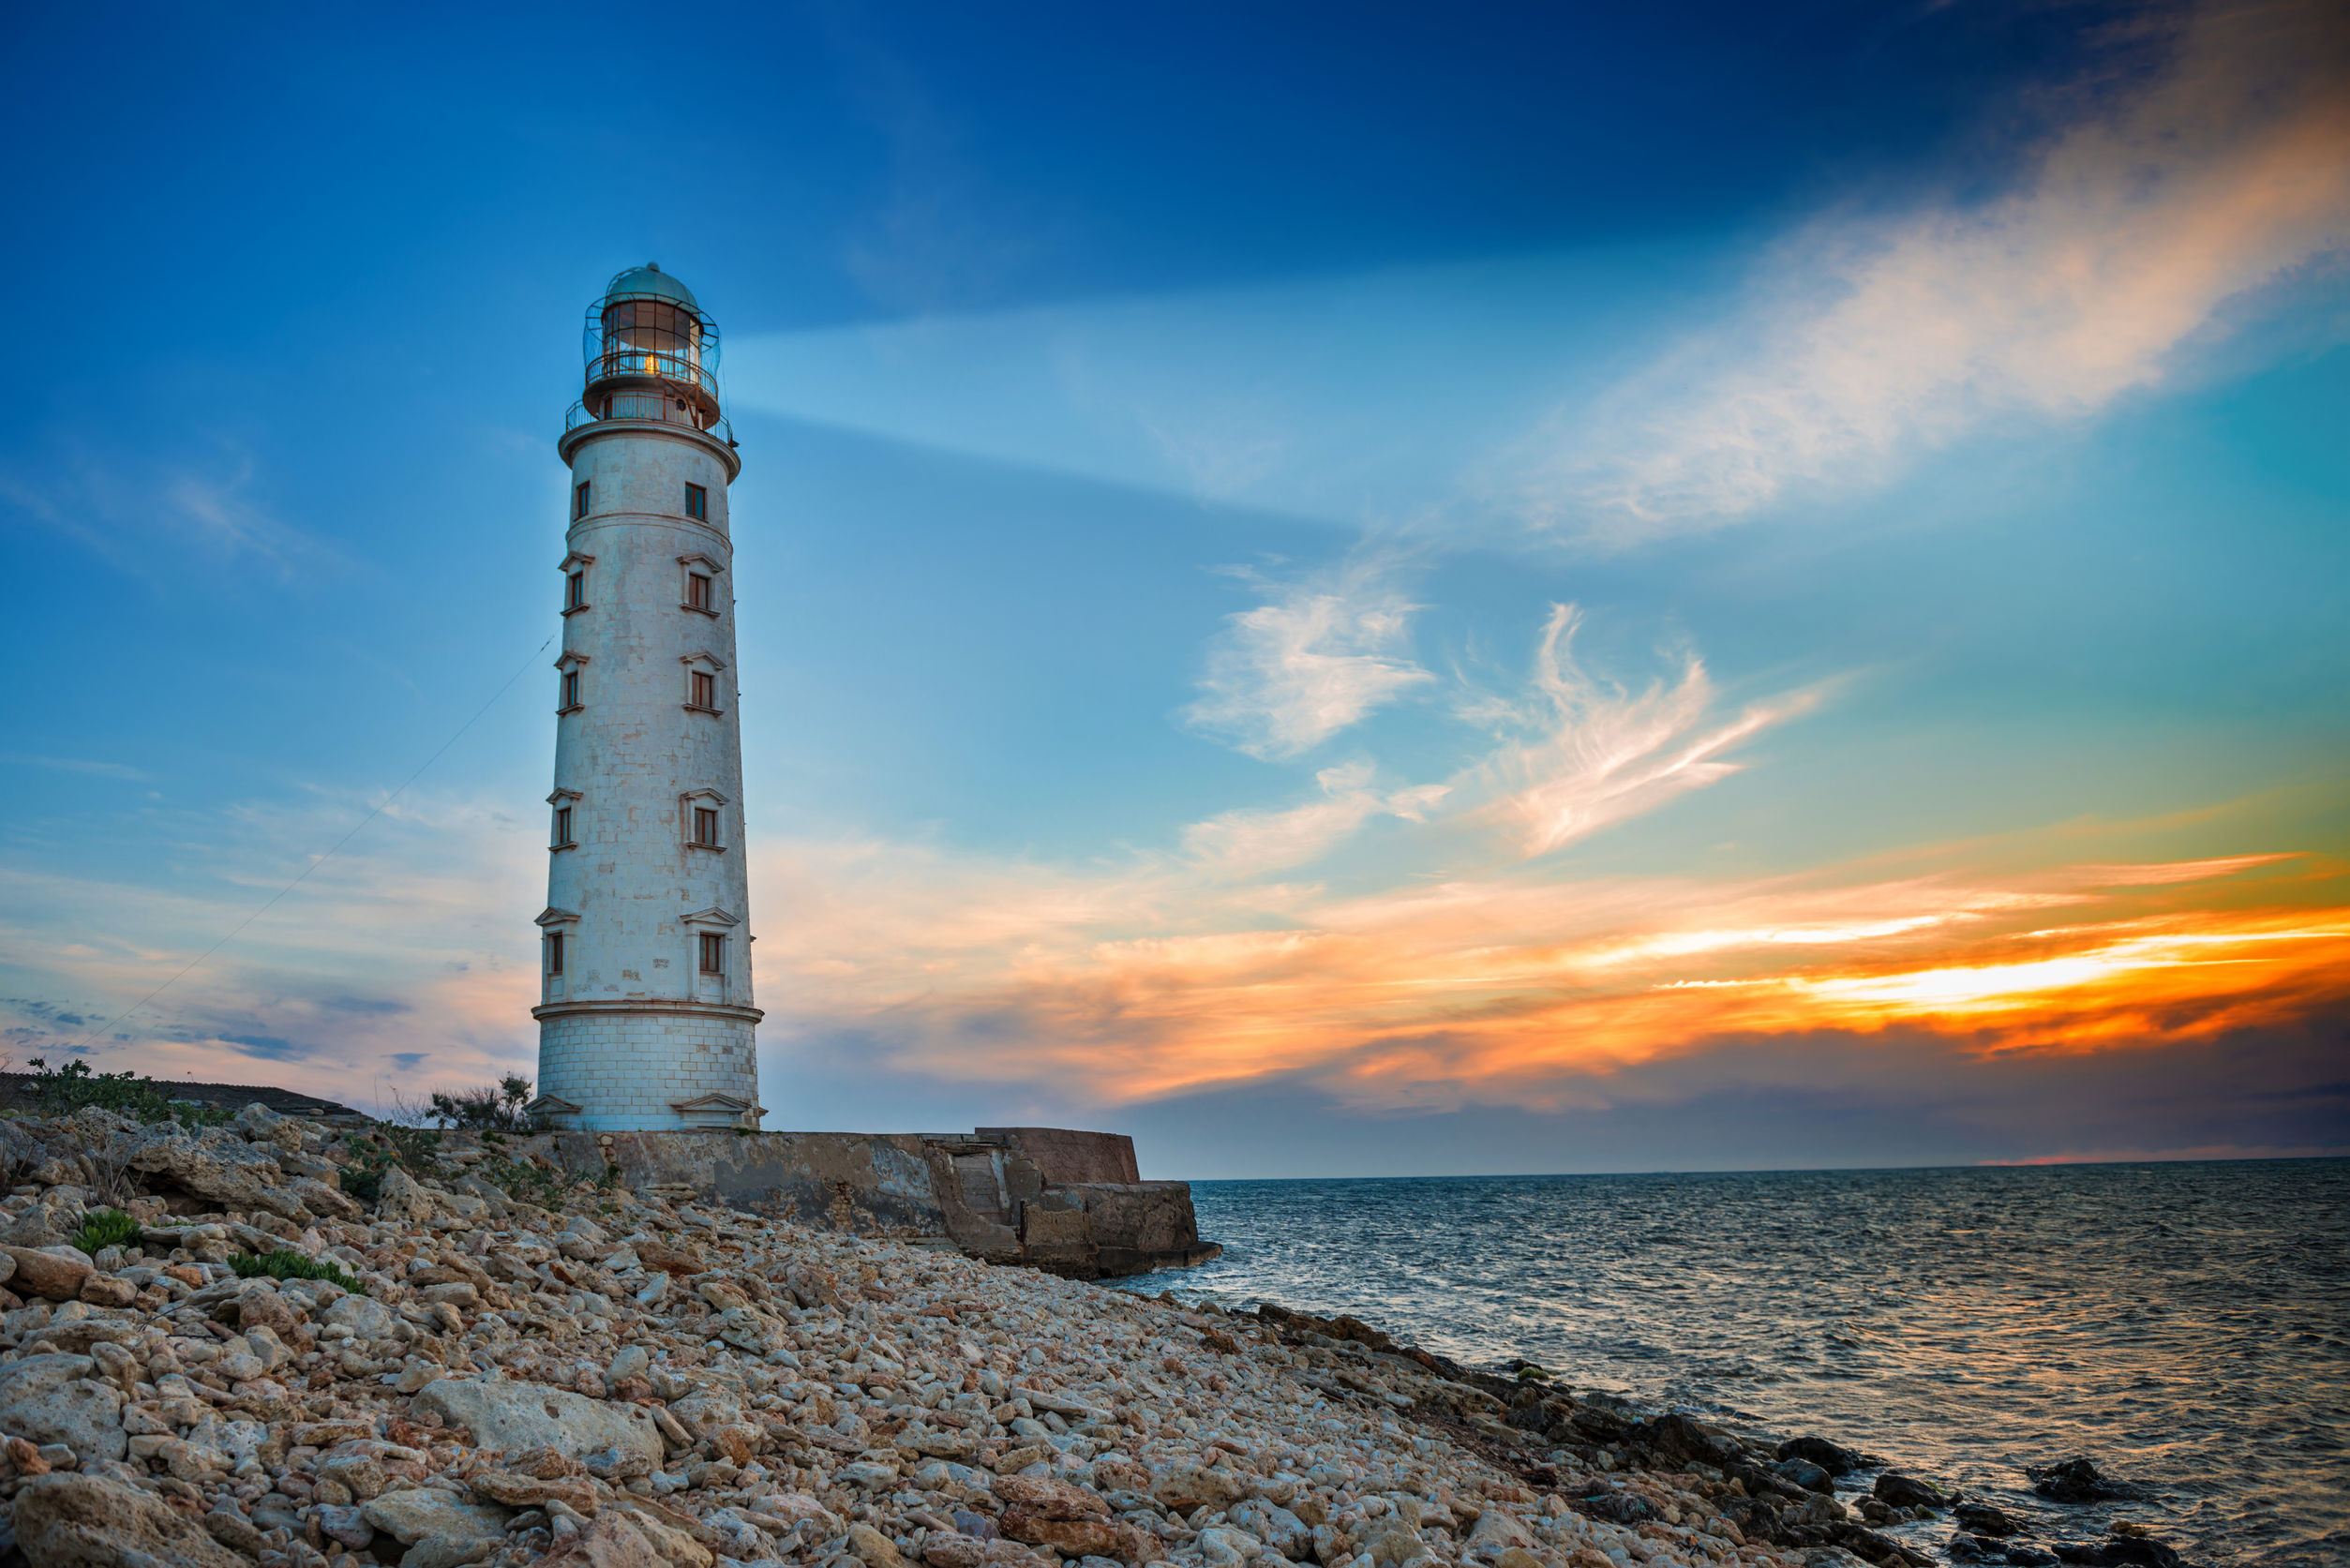 39704848 - lighthouse searchlight beam through sea air at night. seascape at sunset